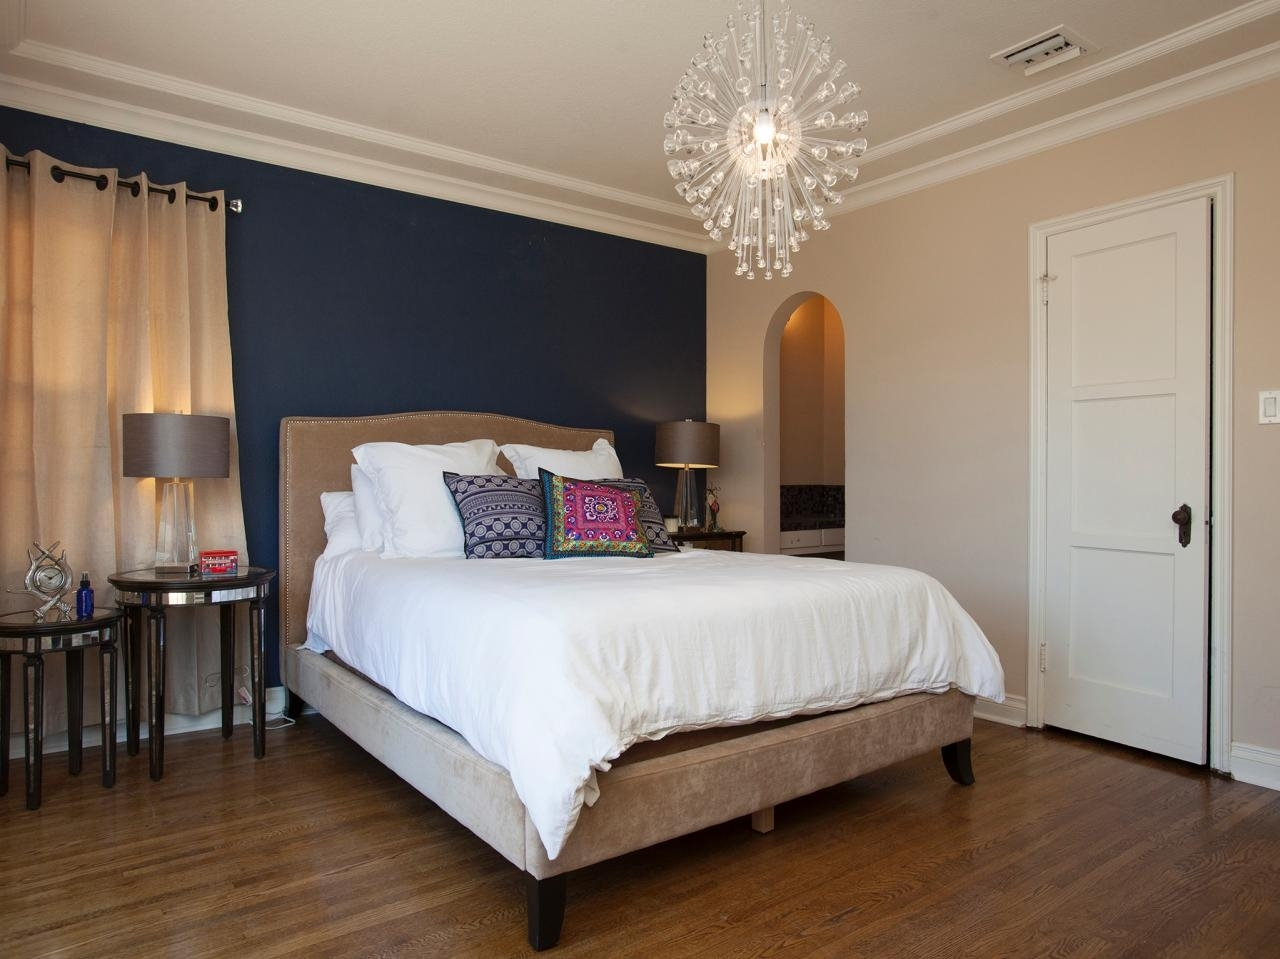 Bedroom | Dark Blue Wall Accent With Burlywood Color Base With Most Recent Wall Accents For Blue Room (Gallery 1 of 15)